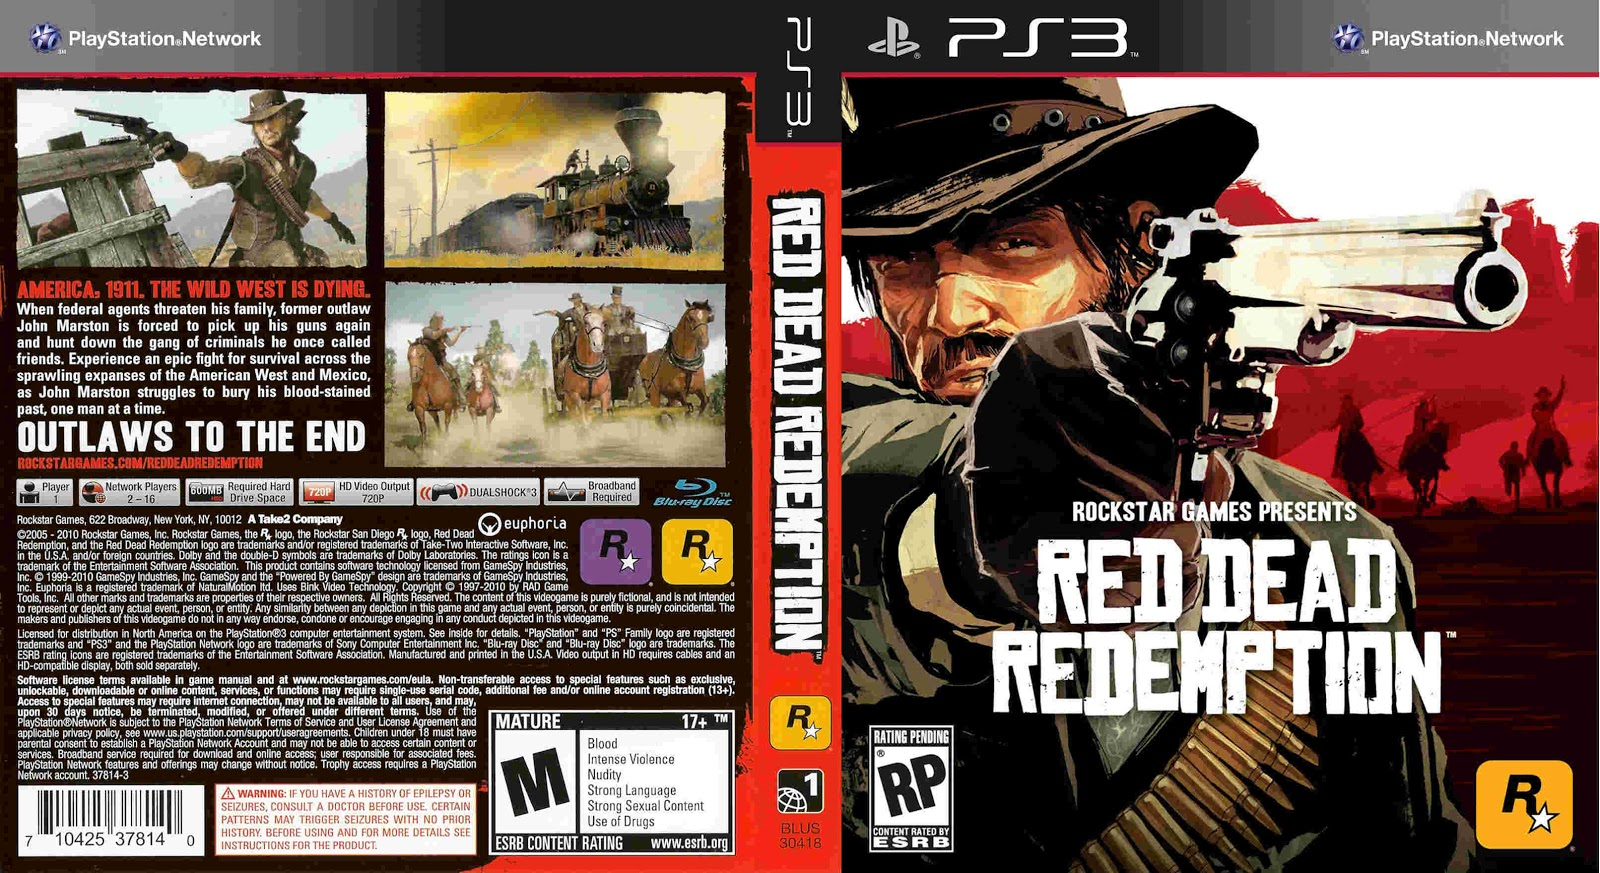 Tudo Gtba: Red Dead Redemption (2010) NTSC - Cover Game PS3